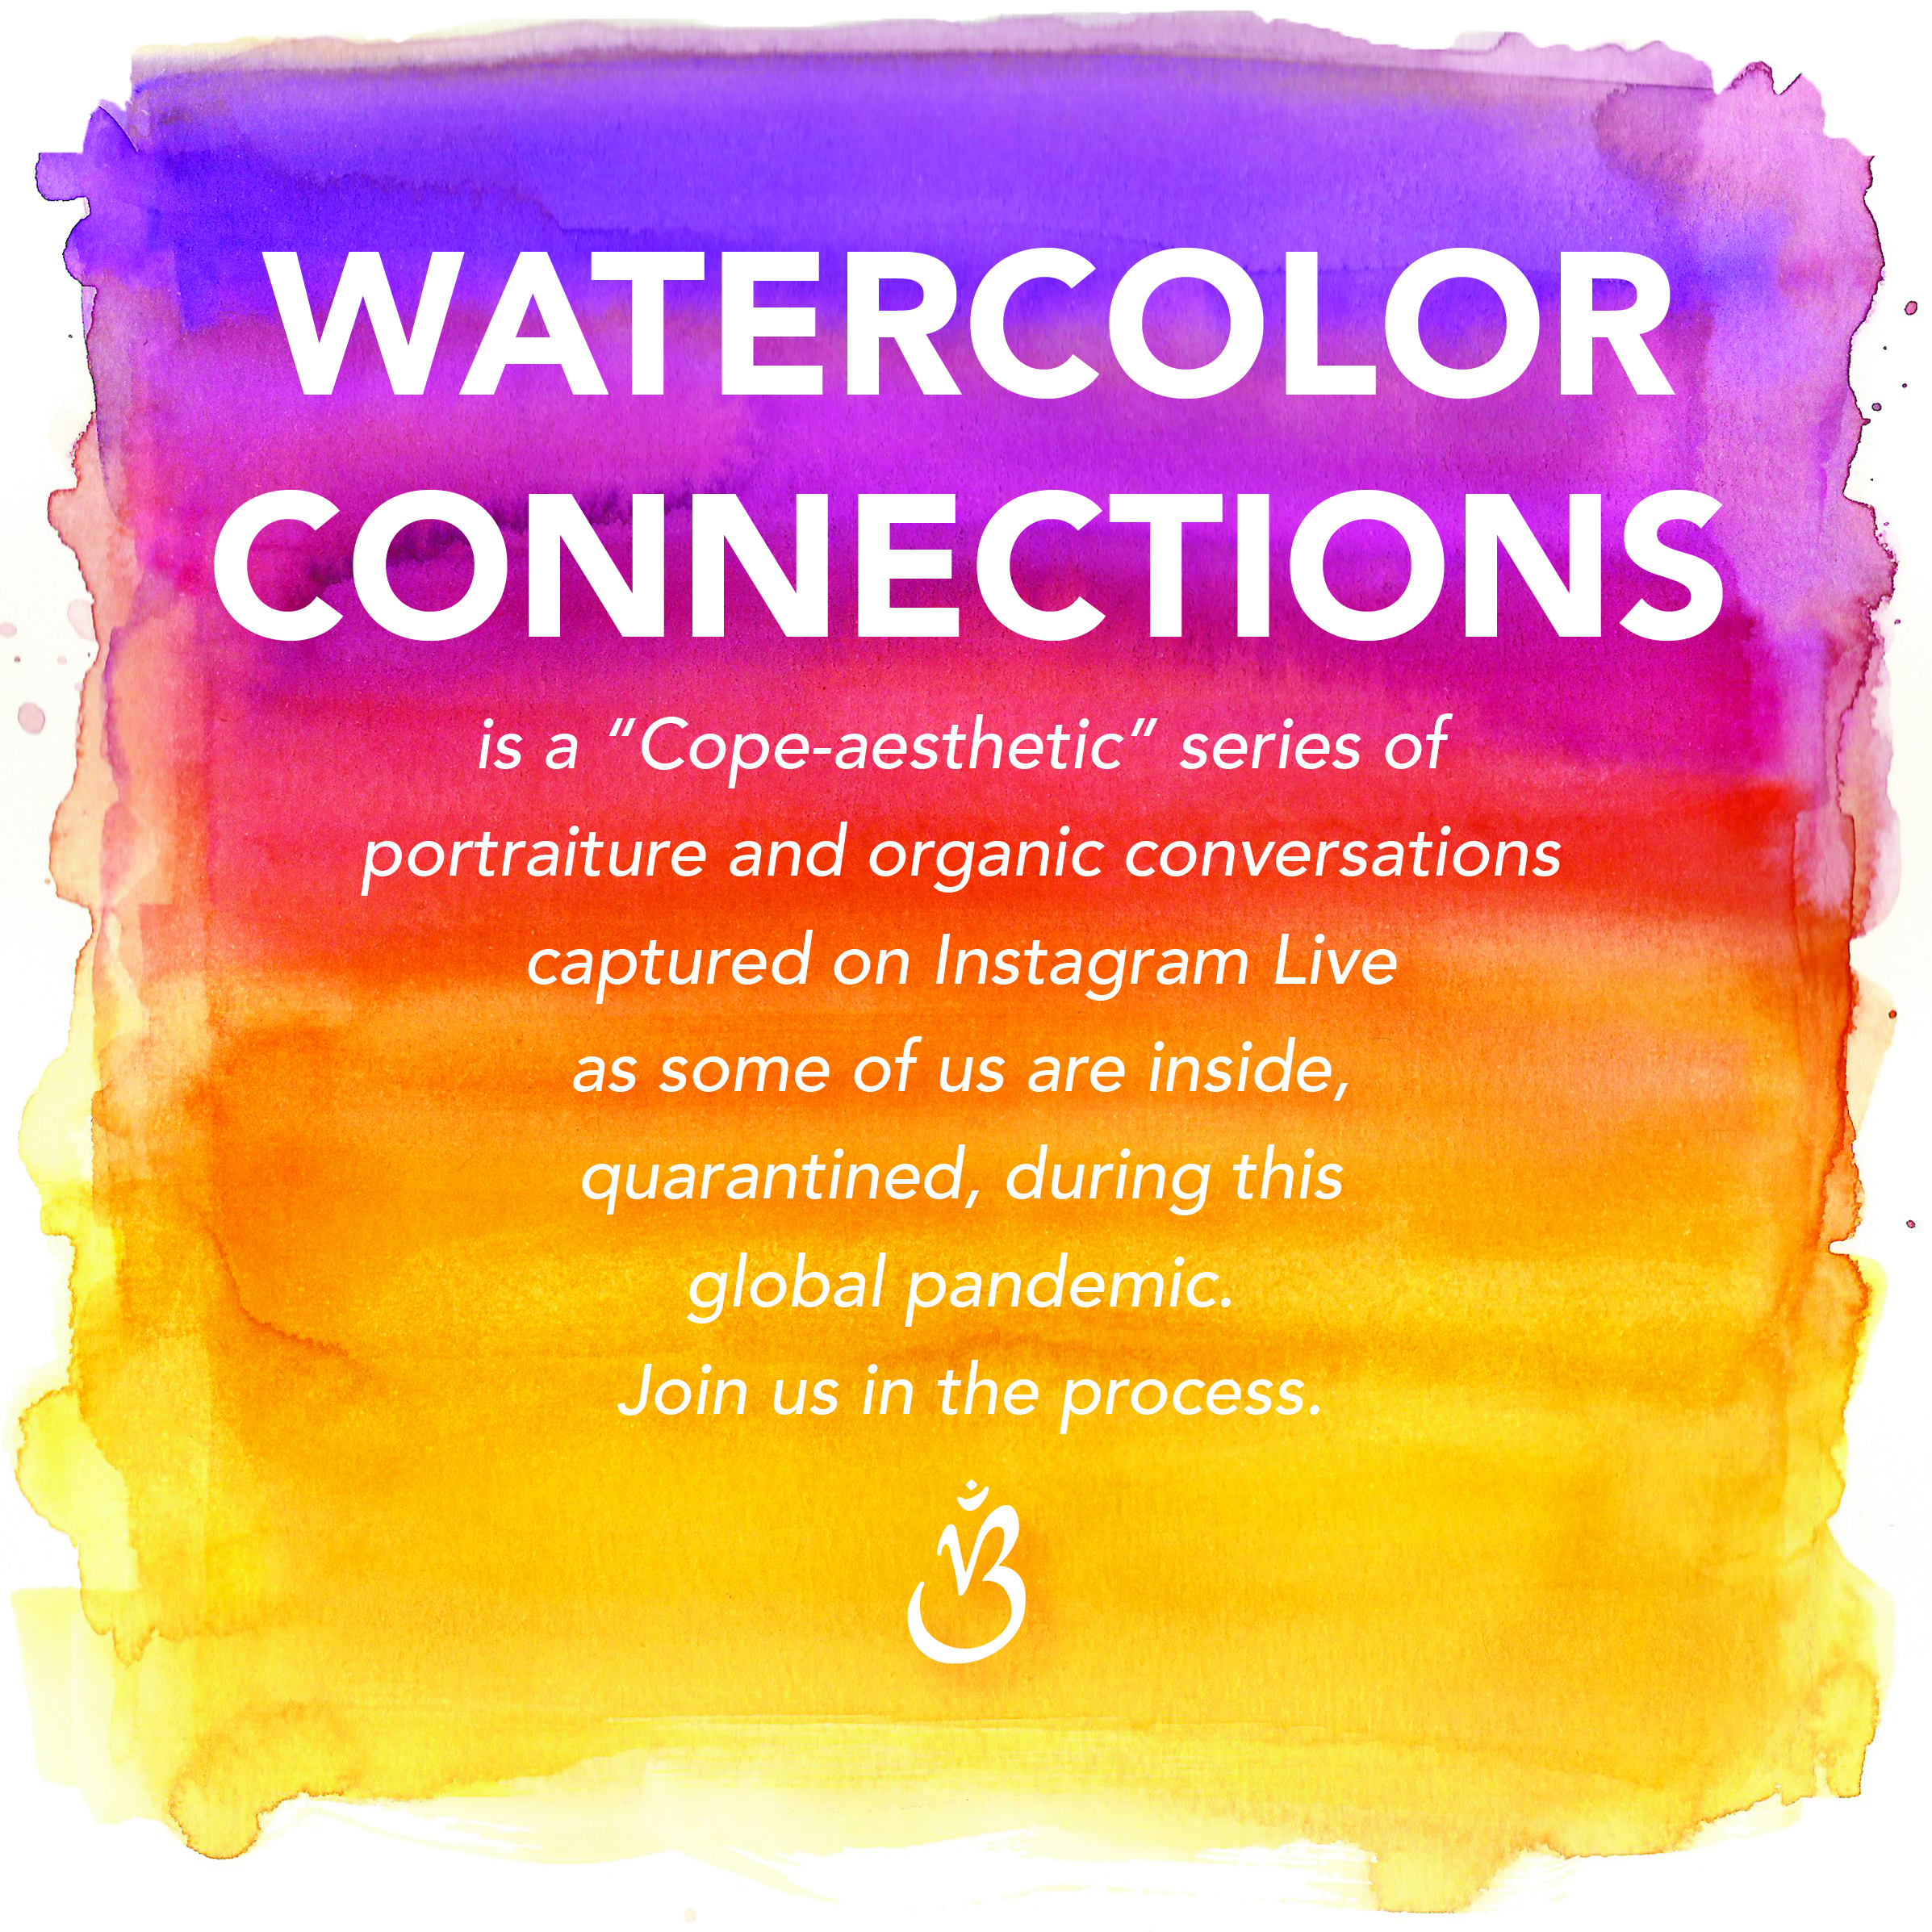 Instagram WaterColor Connections details